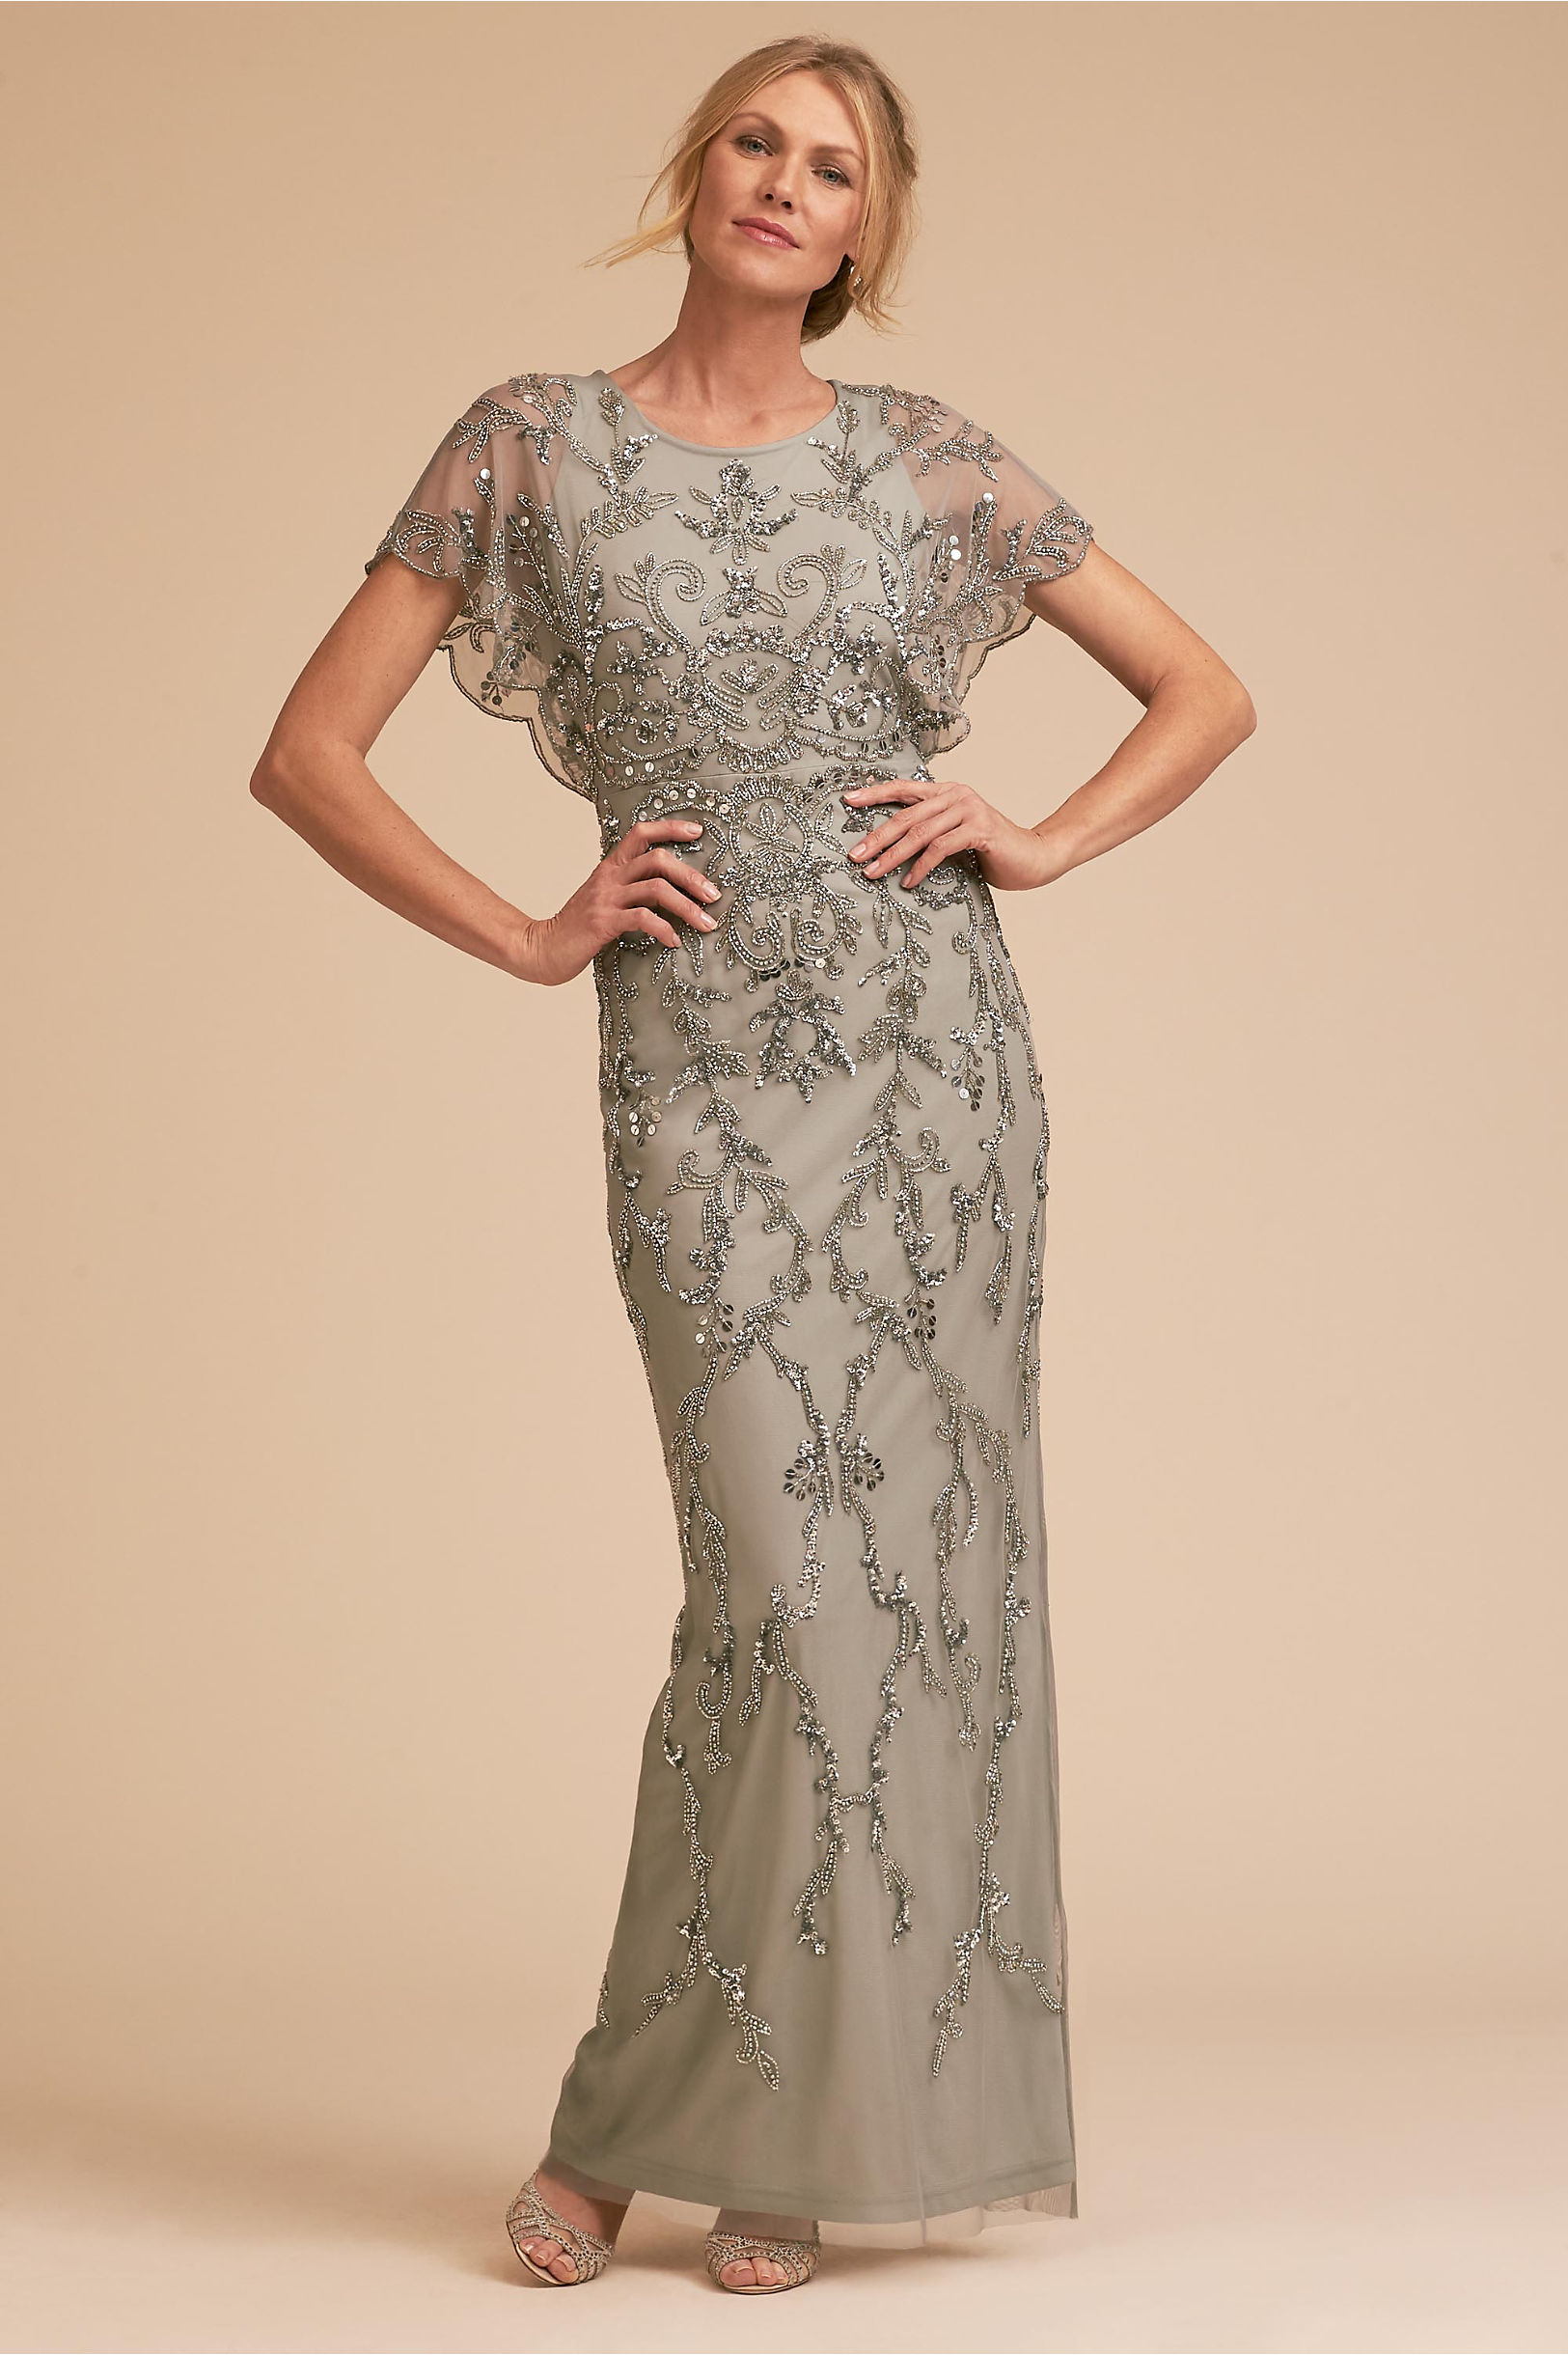 mother of the bride dresses long length, short length, and tea length, long mother of the bride dresses